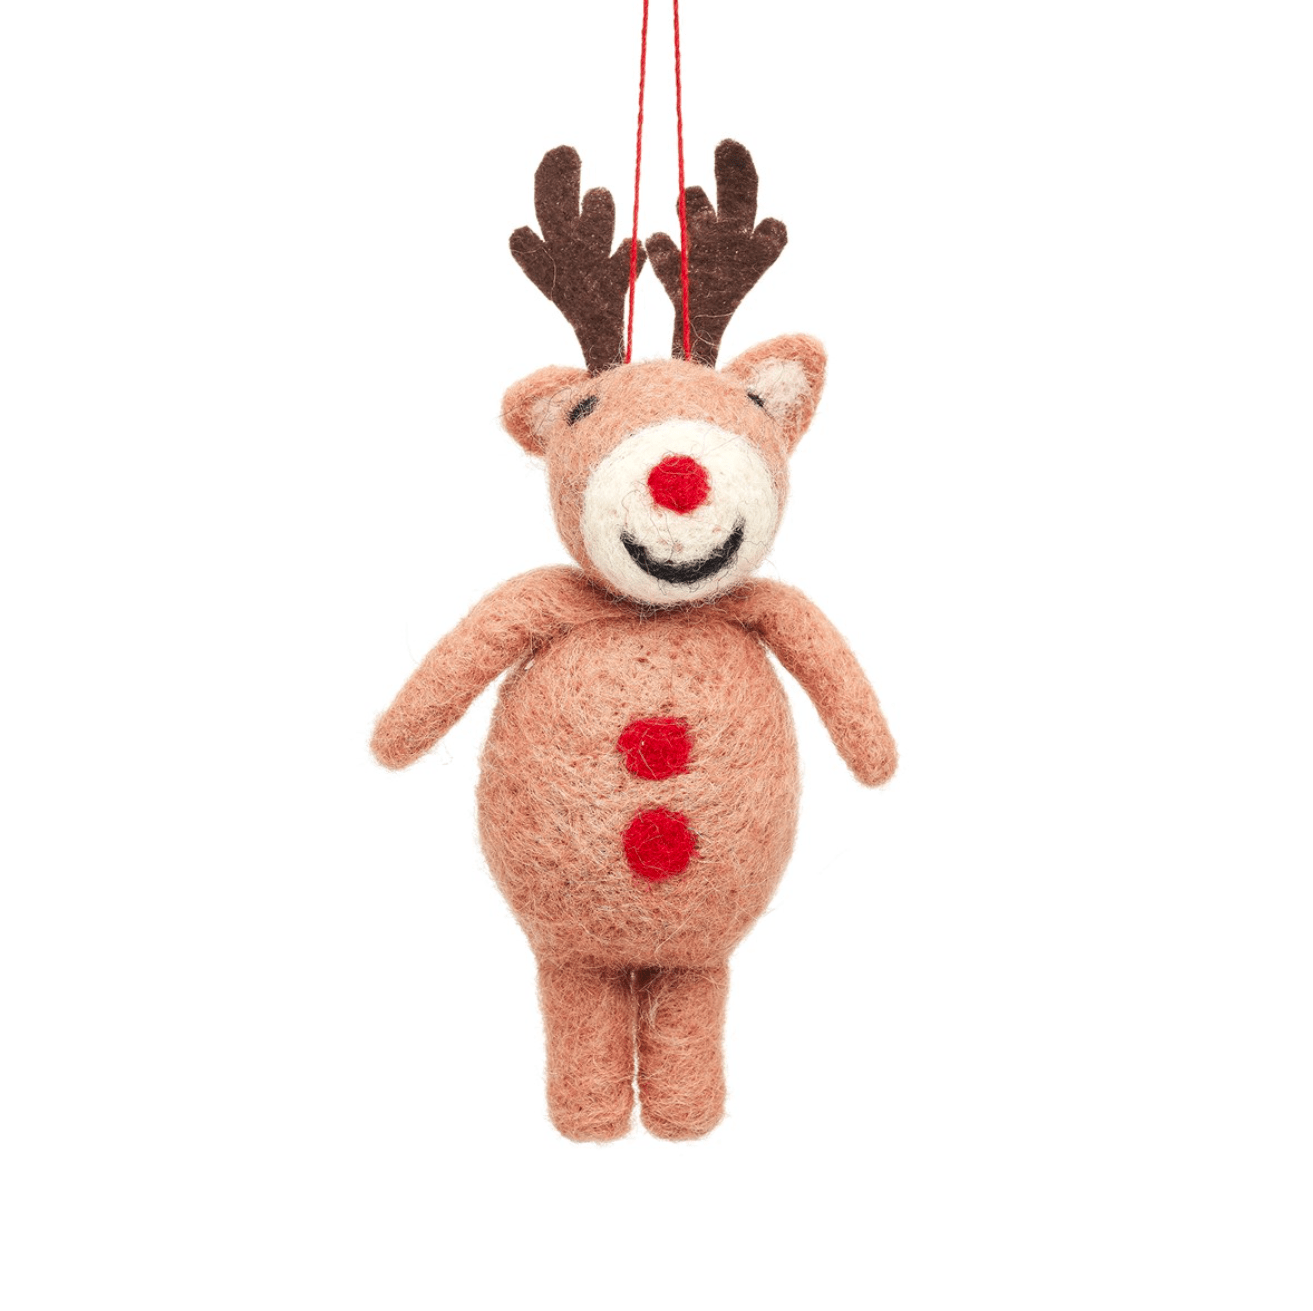 Reindeer Felt Decoration By Sass & Belle